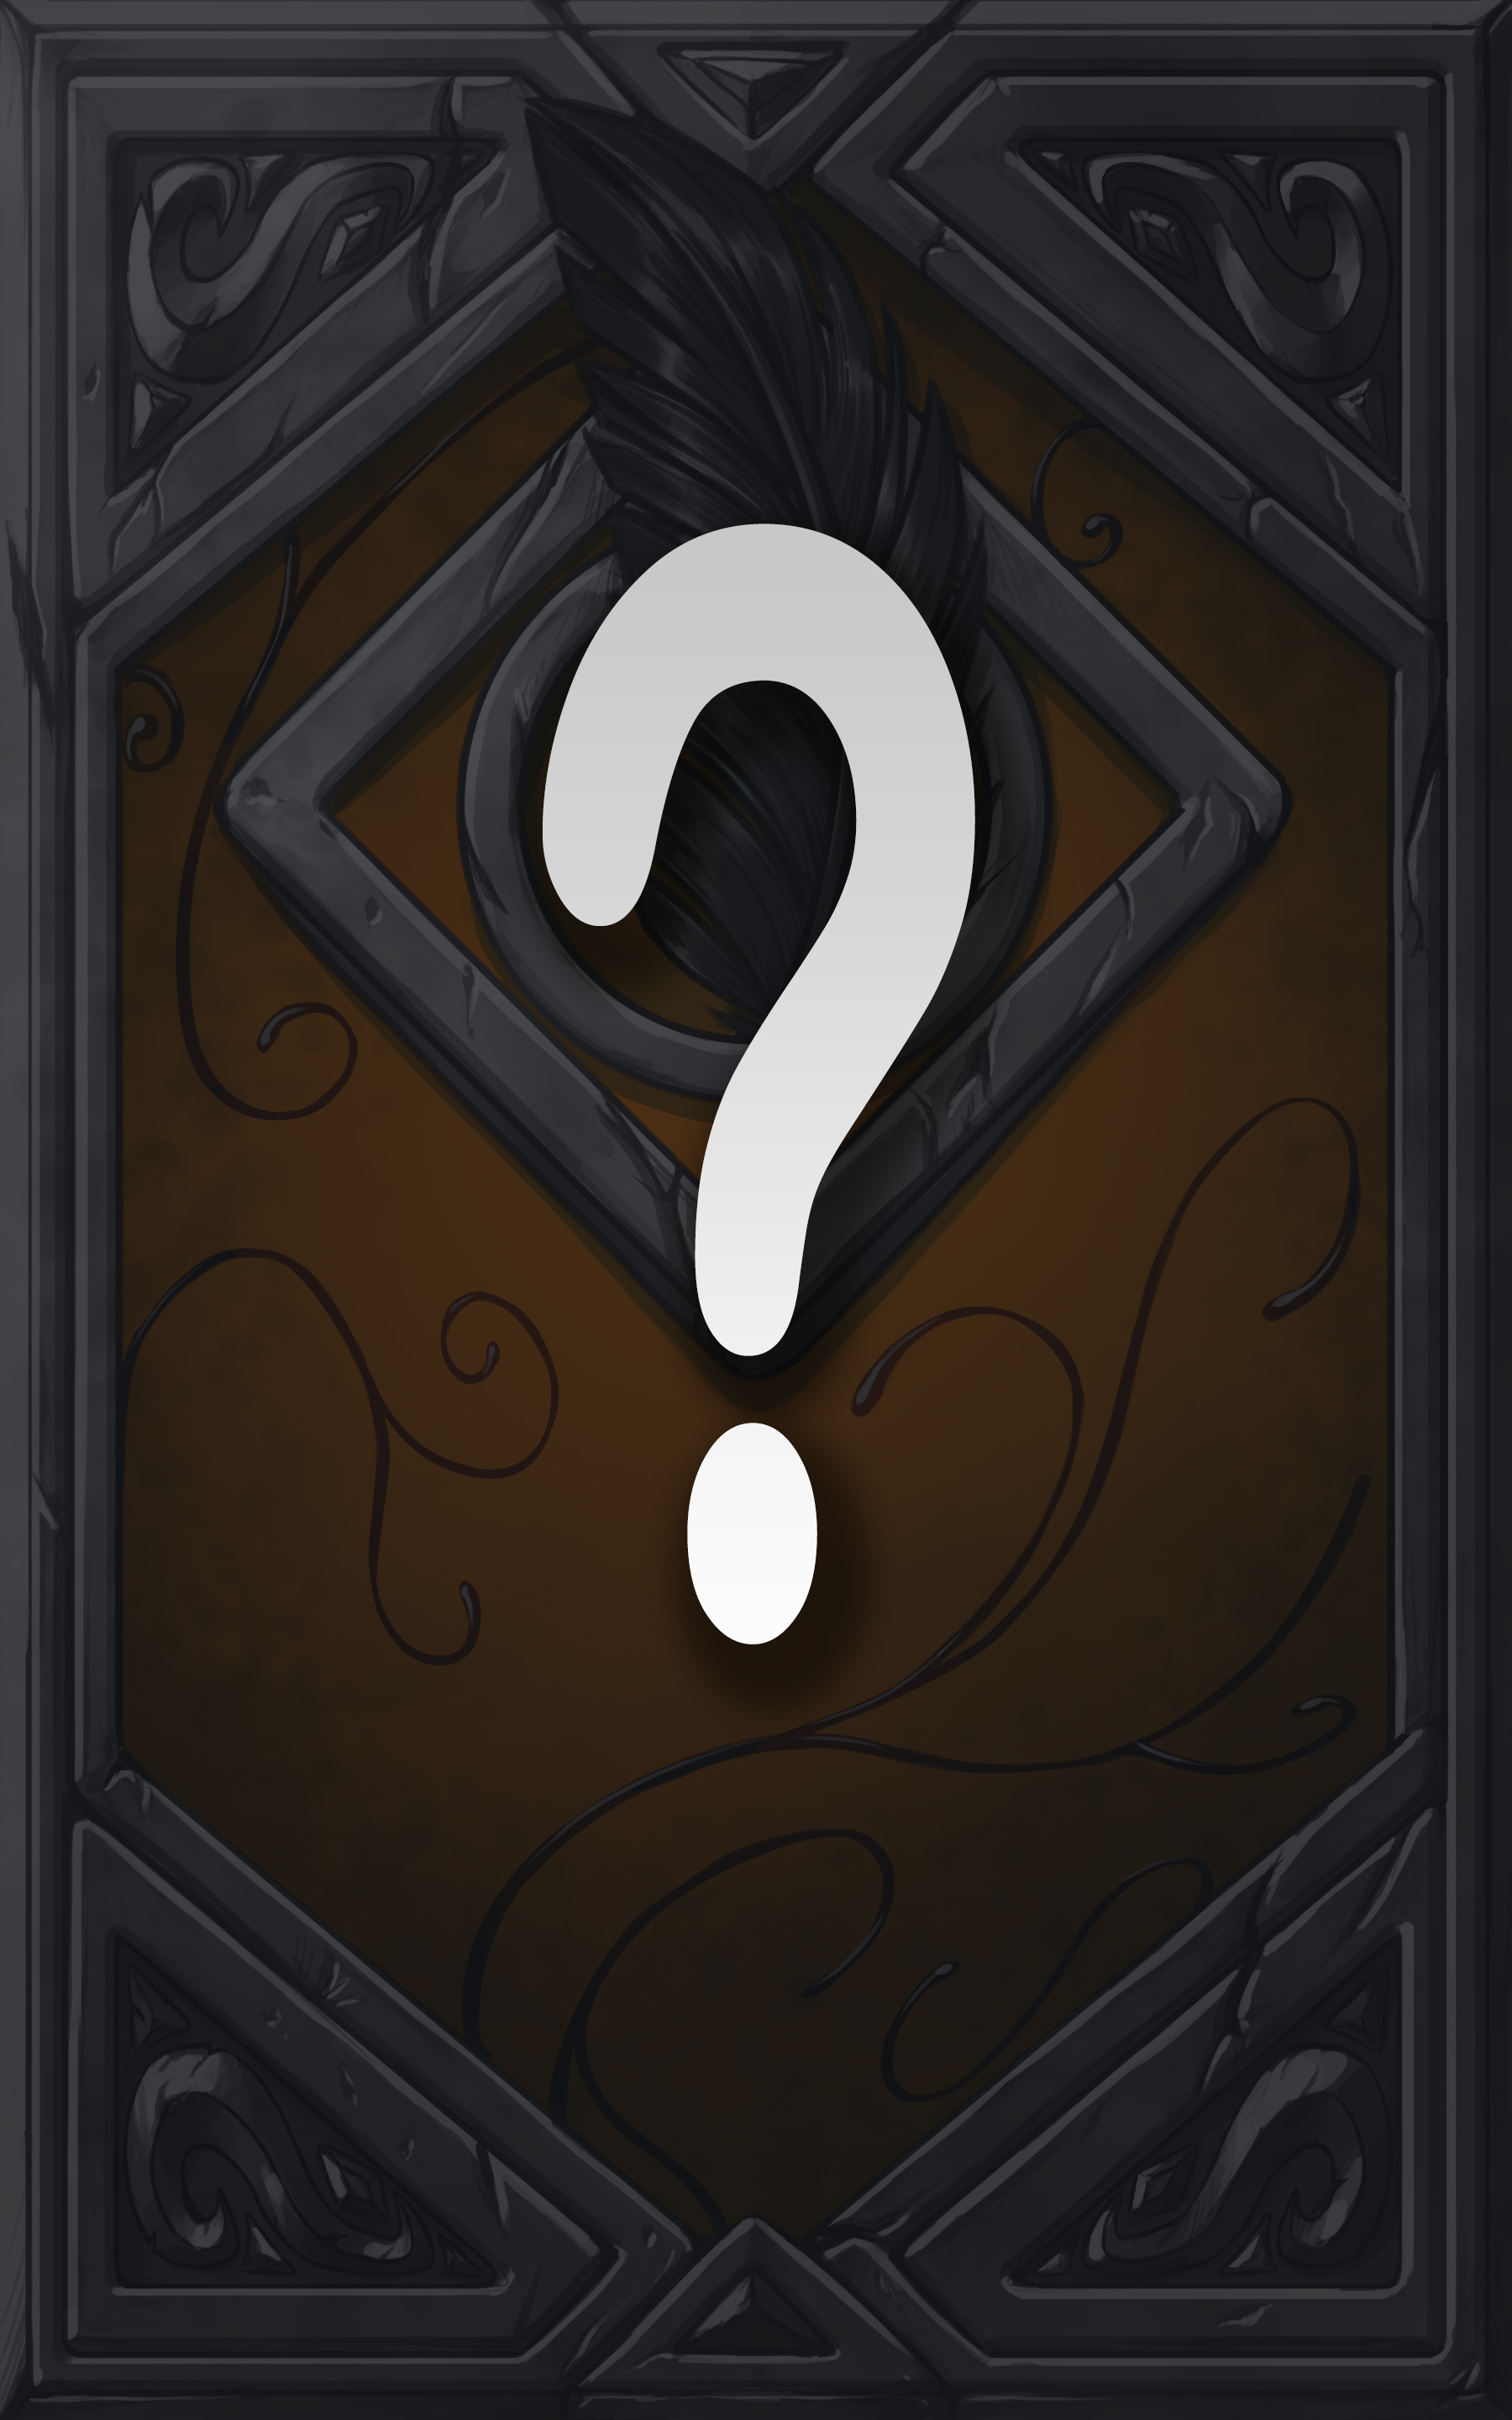 Book cover question mark